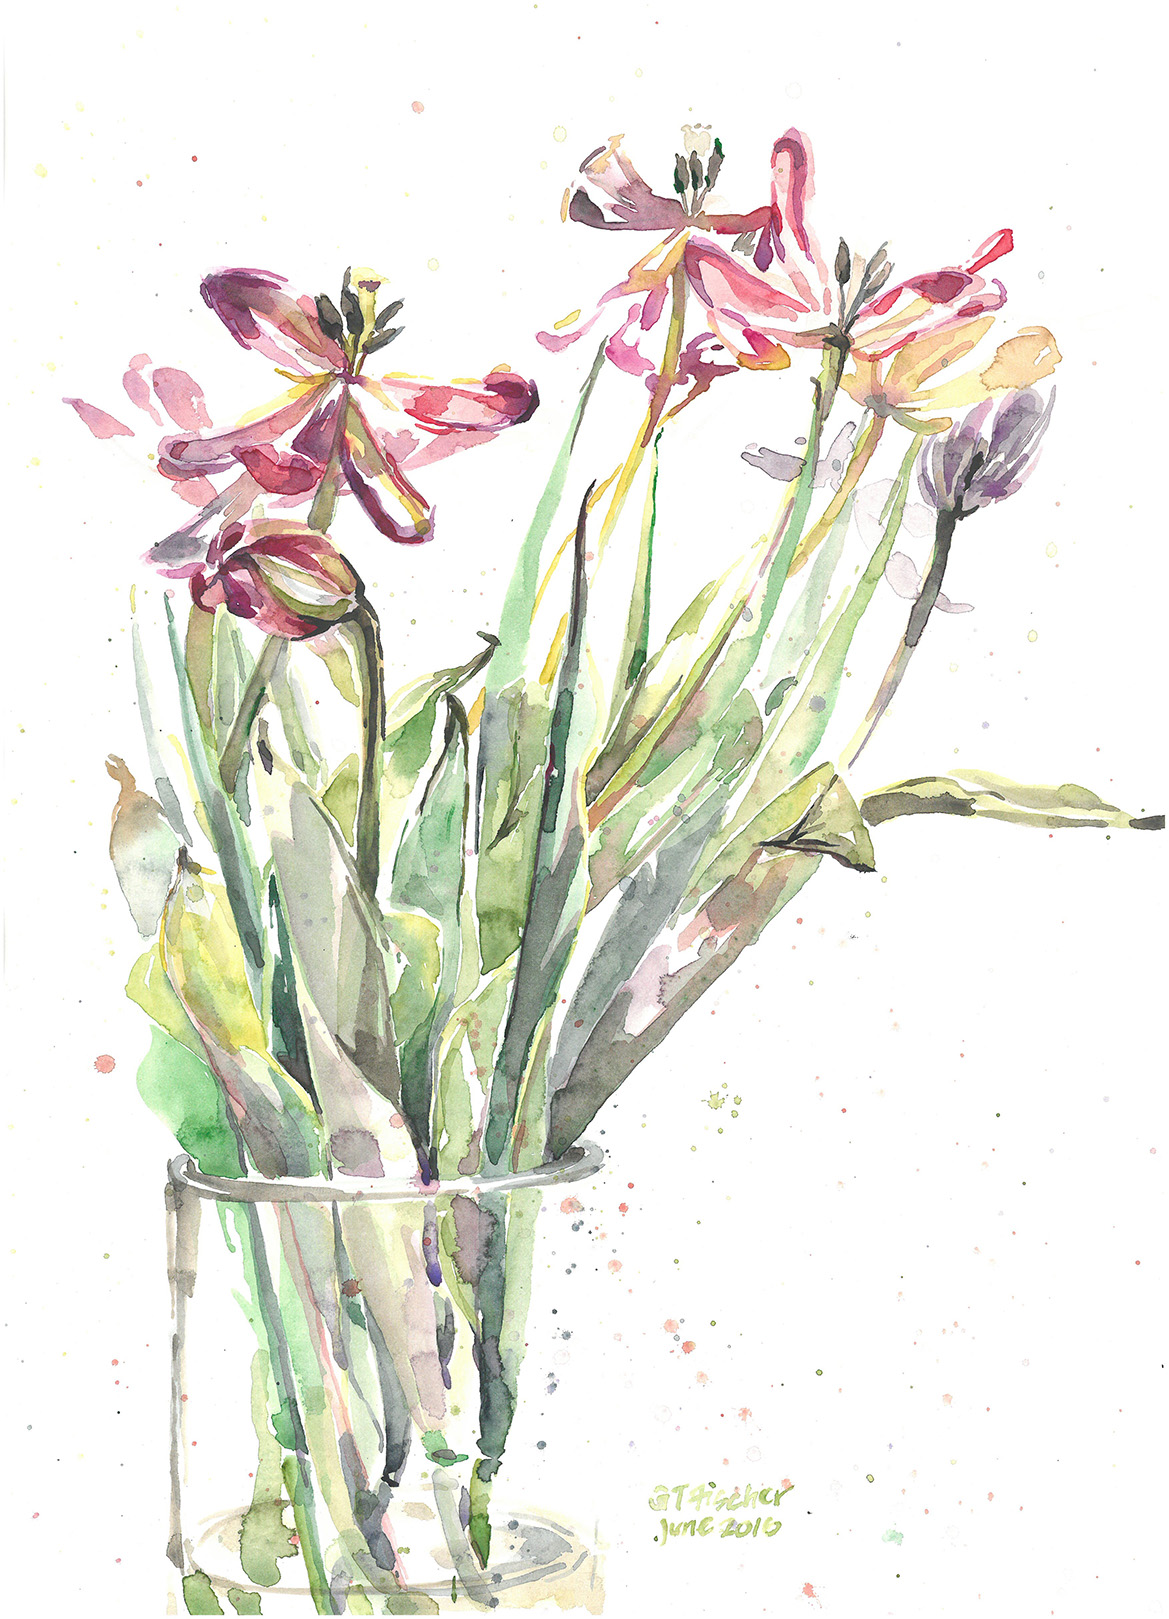 Dying Tulips